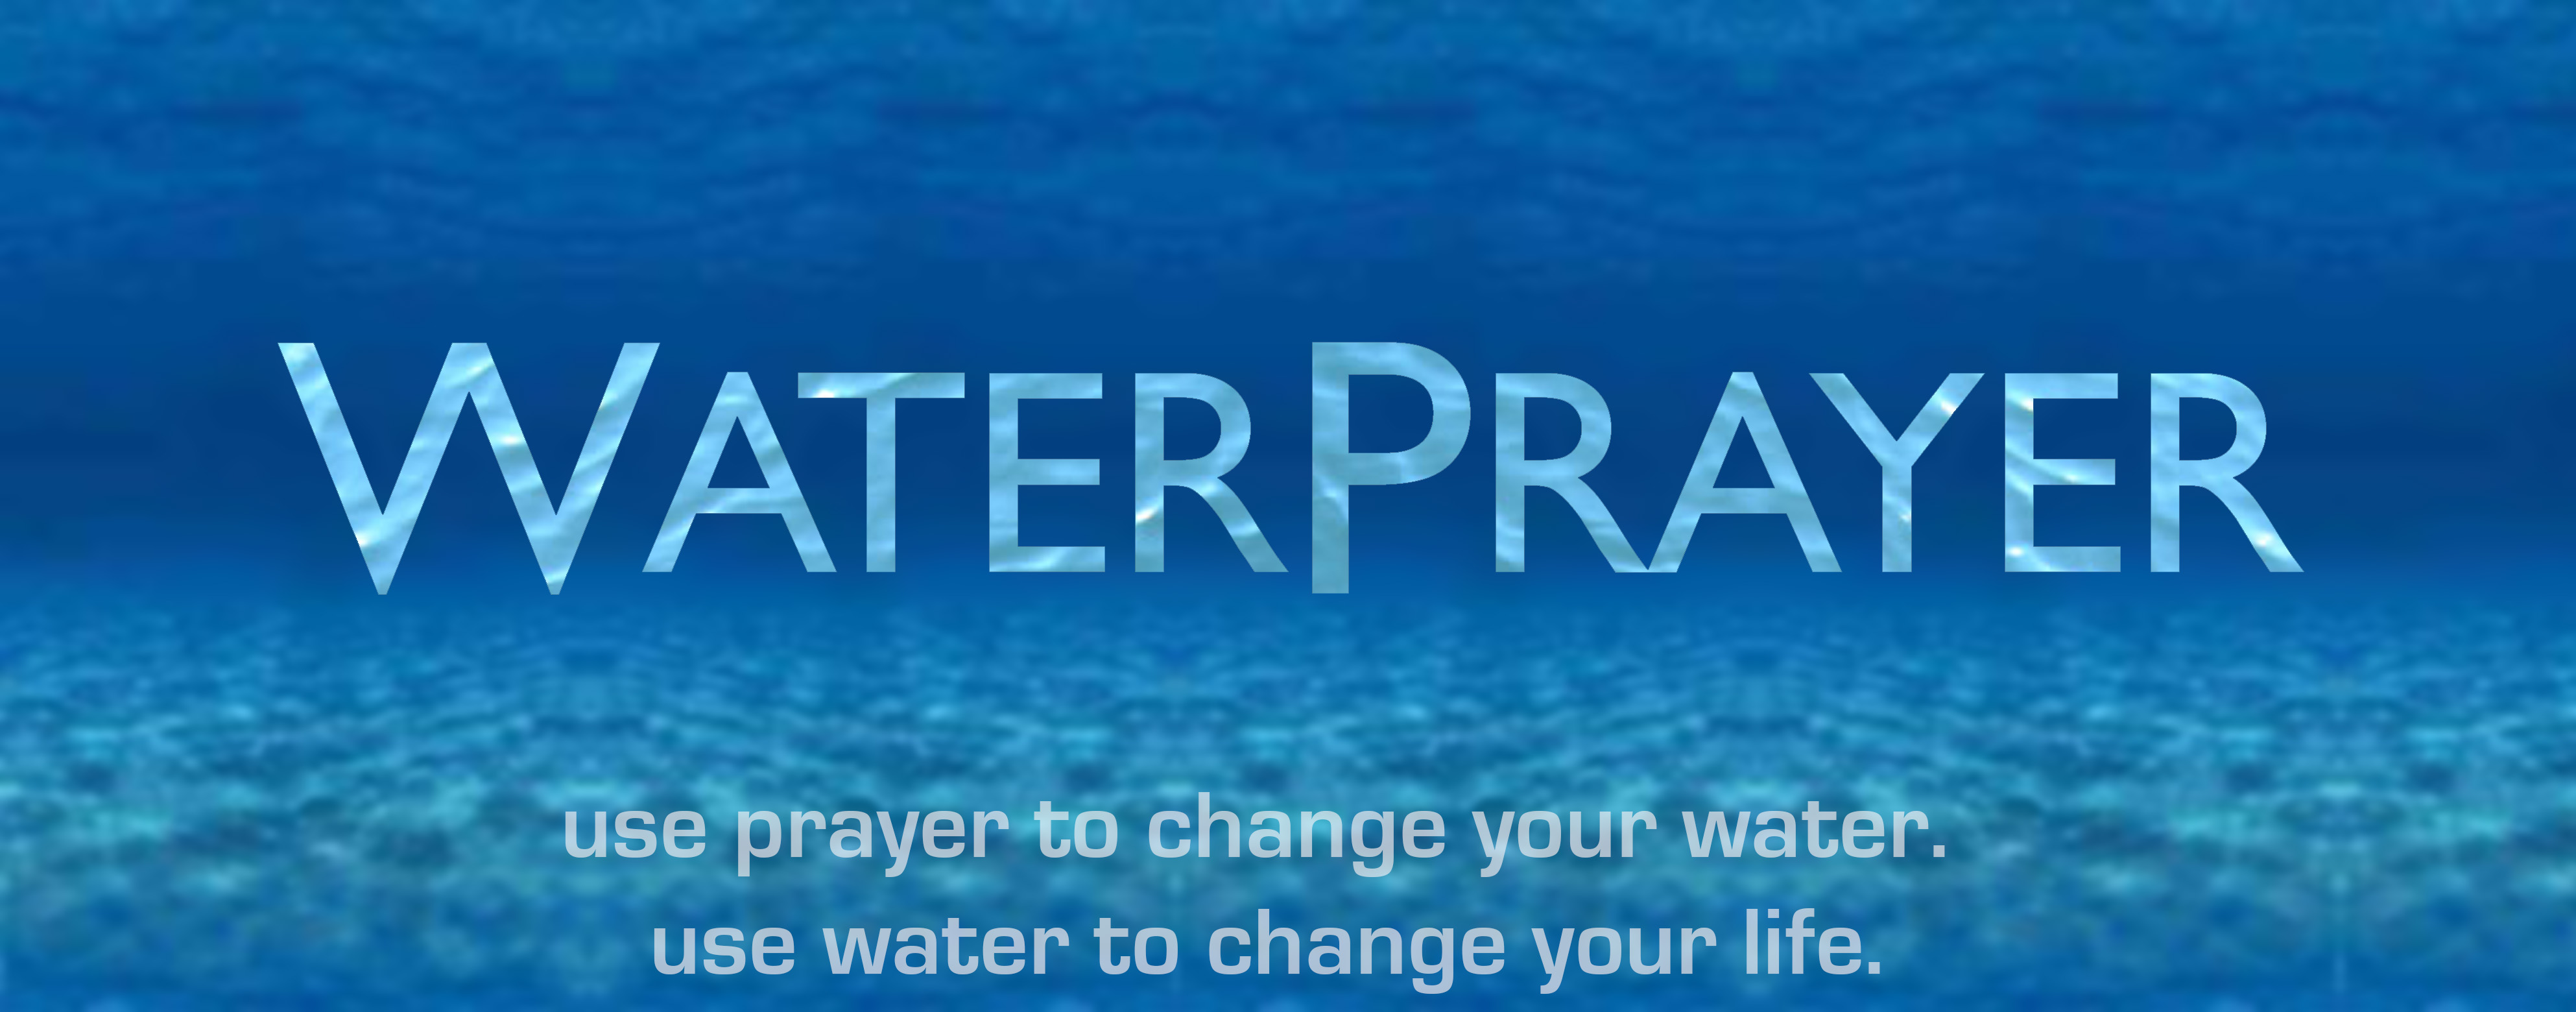 WaterPrayer